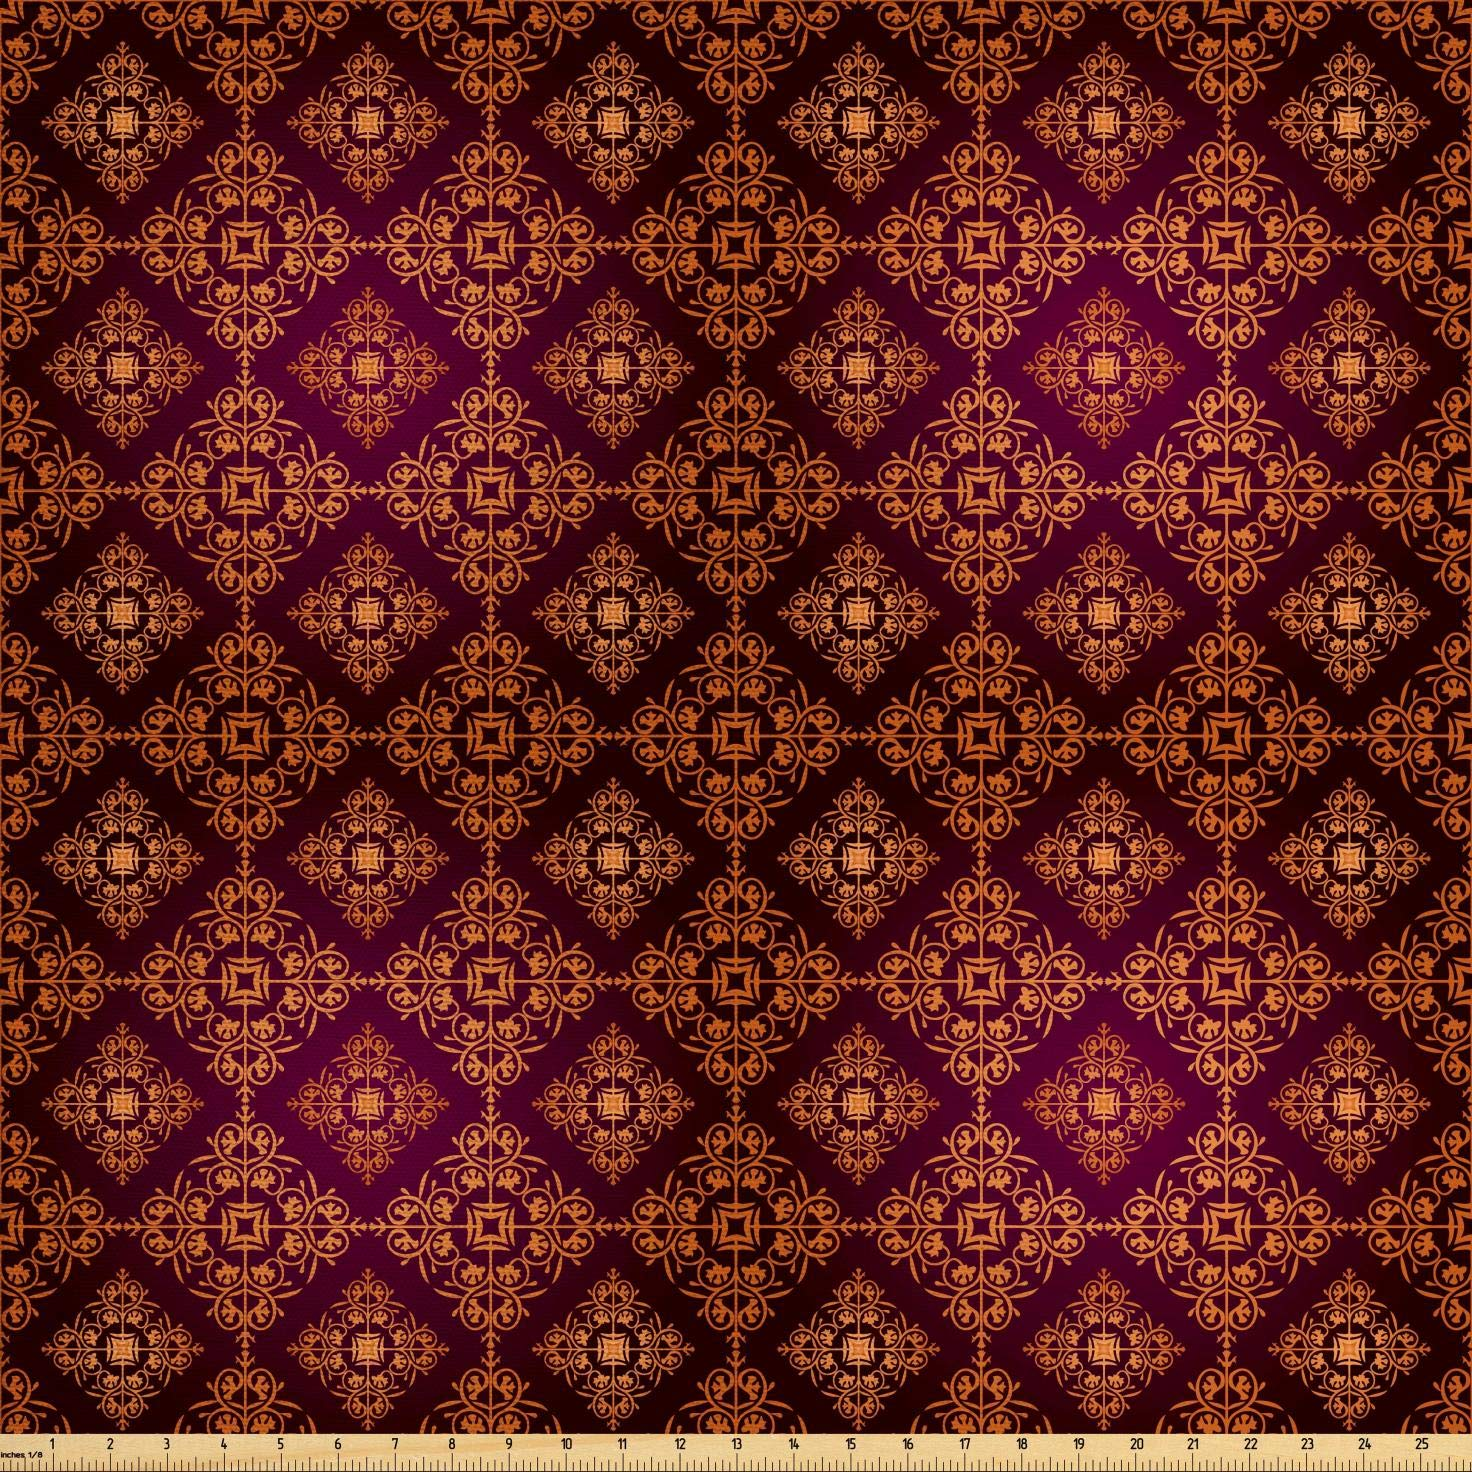 Ambesonne Damask Fabric by The Yard, Abstract Floral Pattern with Medieval Design Ornamental Victorian Image, Decorative Fabric for Upholstery and Home Accents,10 Yards, Orange Magenta Black by Ambesonne (Image #1)